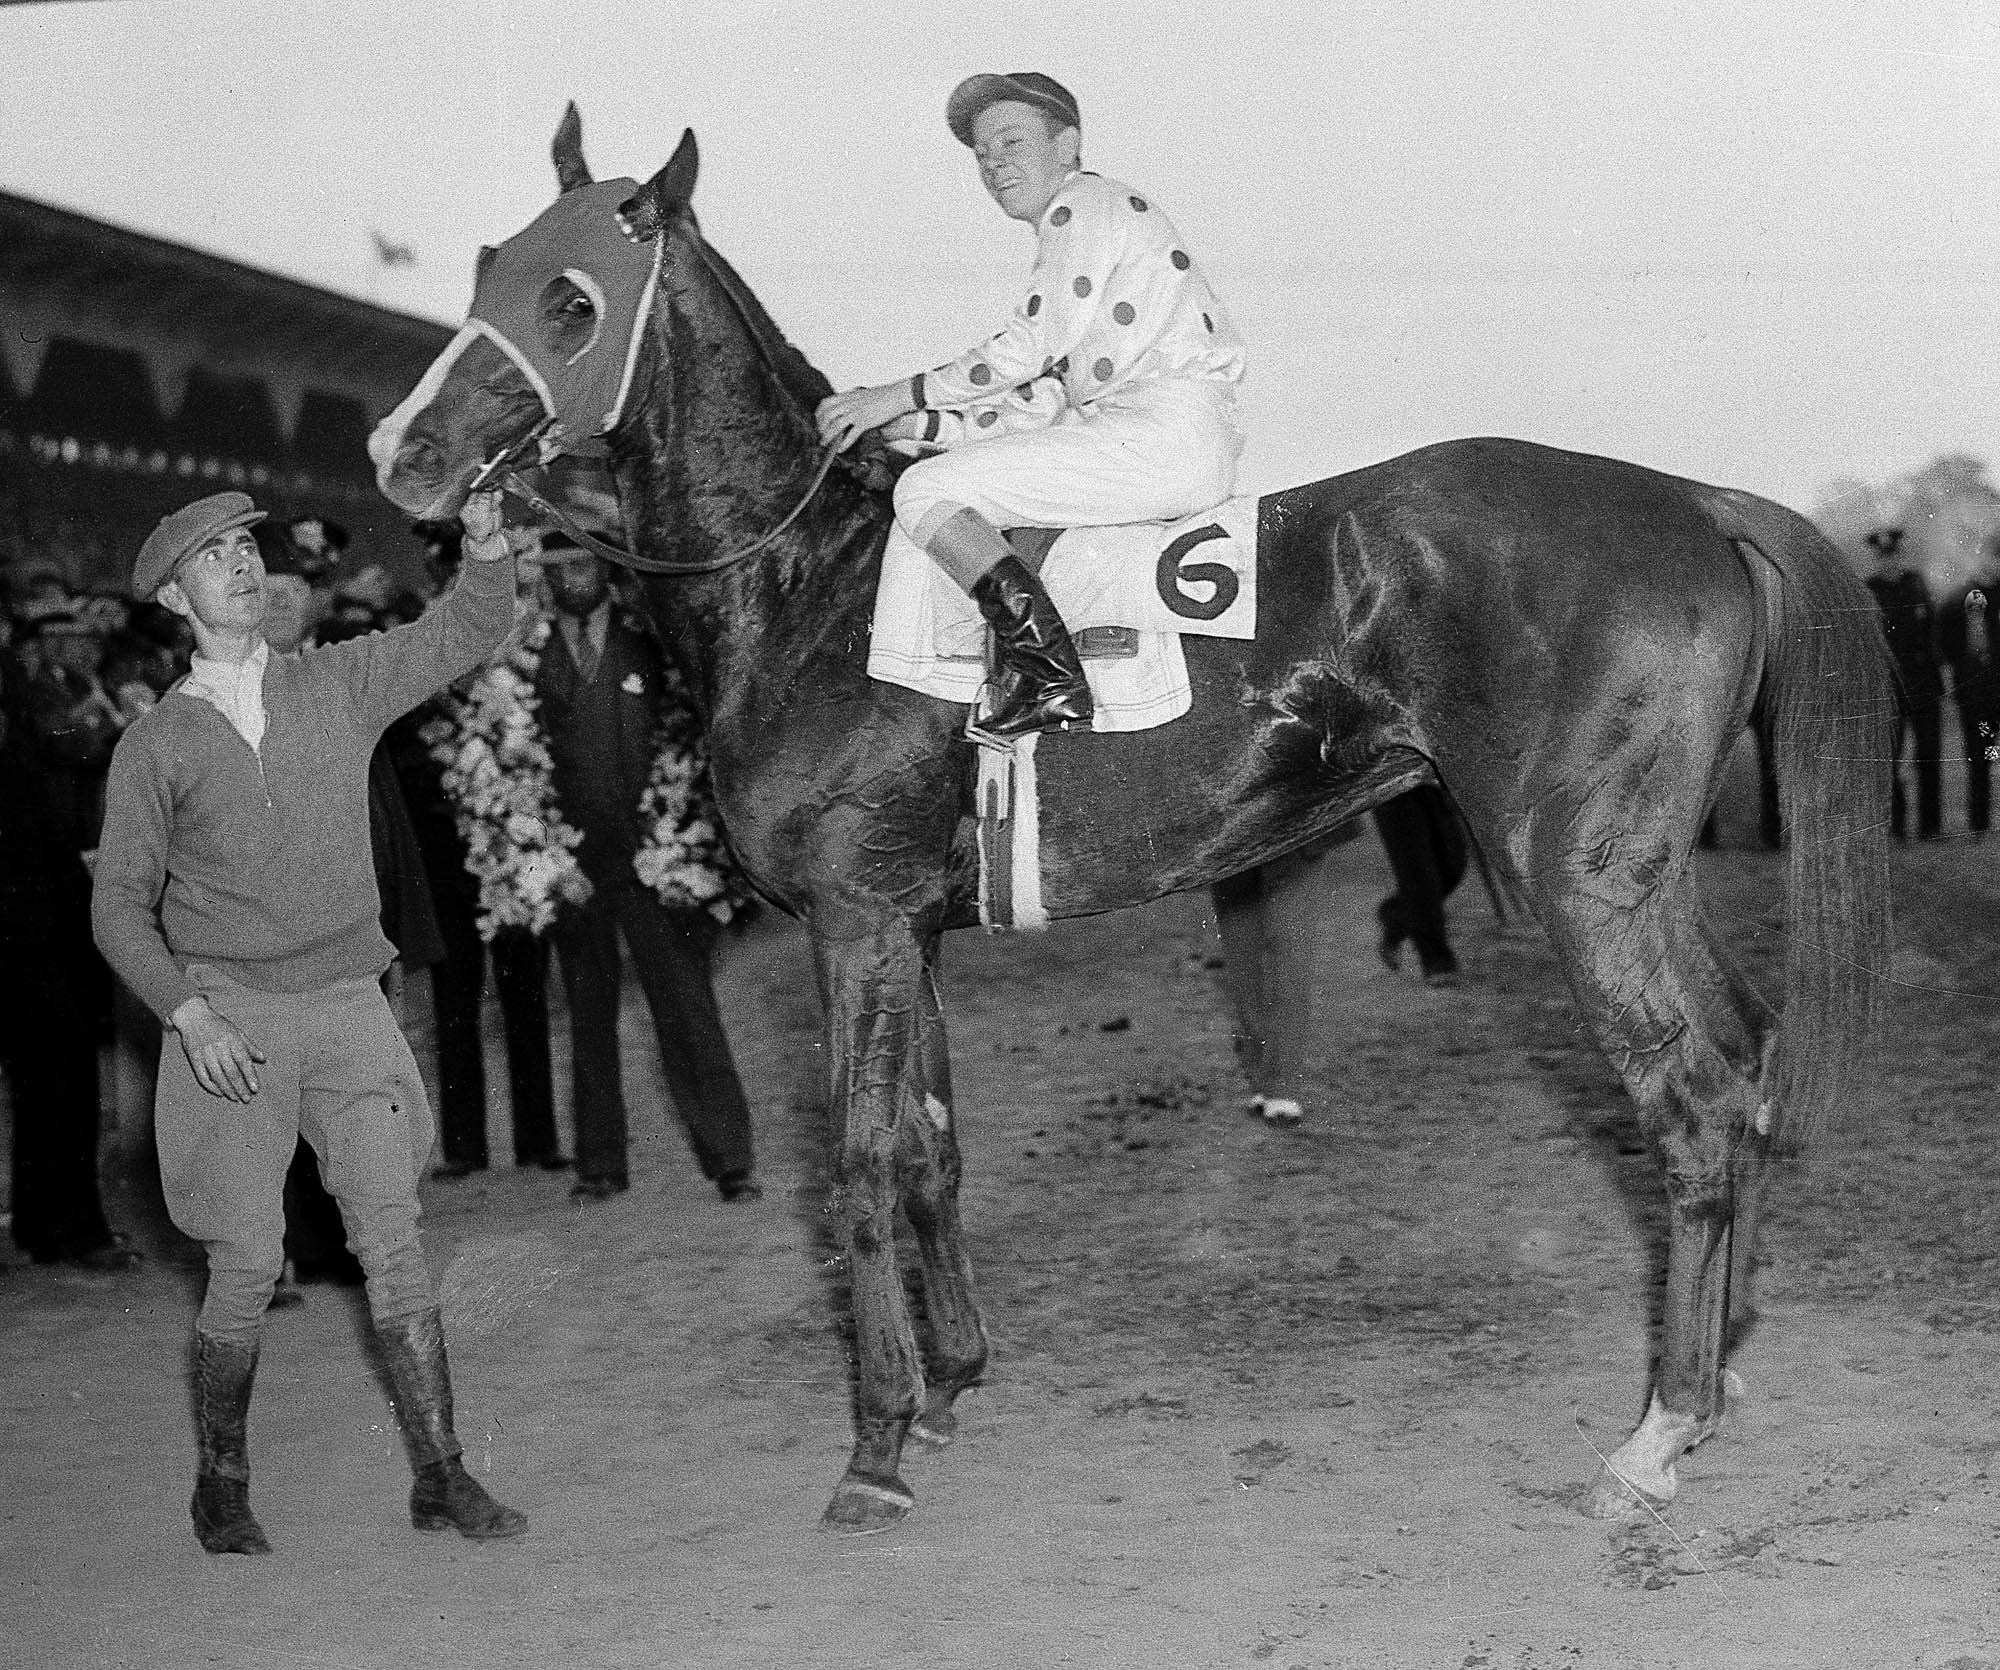 Omaha, with jockey Willie Saunders up, is shown after winning the Preakness Stakes at Pimlico Race Course in Baltimore, in this May 11, 1935 photo. Omaha won horse racing's triple crown in 1935.